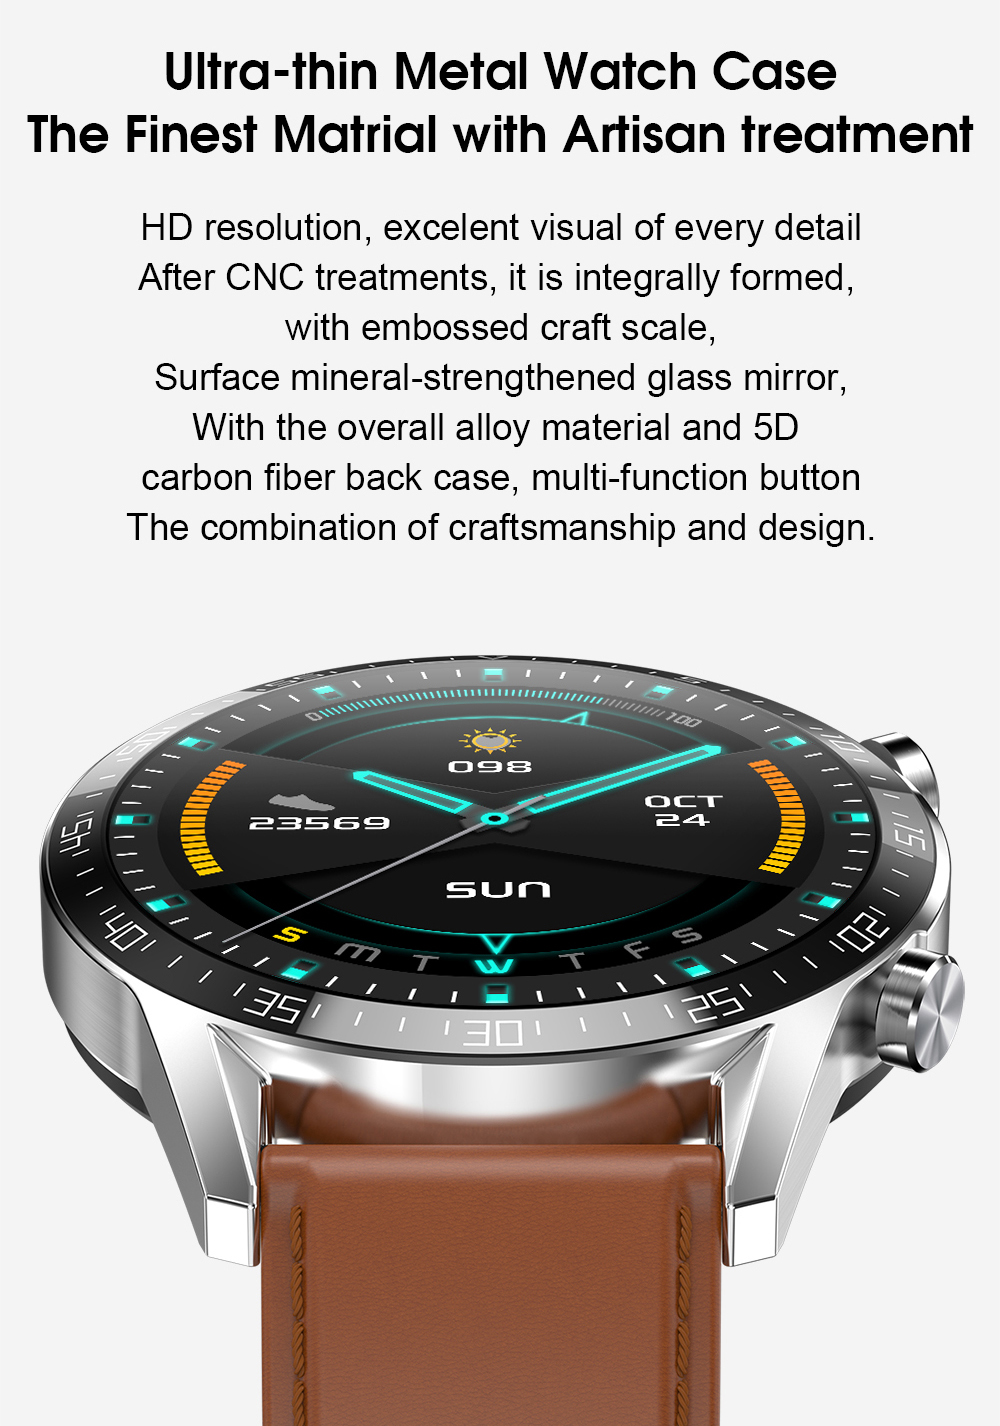 Hddbfb8c897e044139f604419983d82e0P Timewolf IP68 Smart Watch Men Android 2020 Full Touch Smartwatch Men Women Smart Watch For Huawei Xiaomi Apple IOS Android Phone